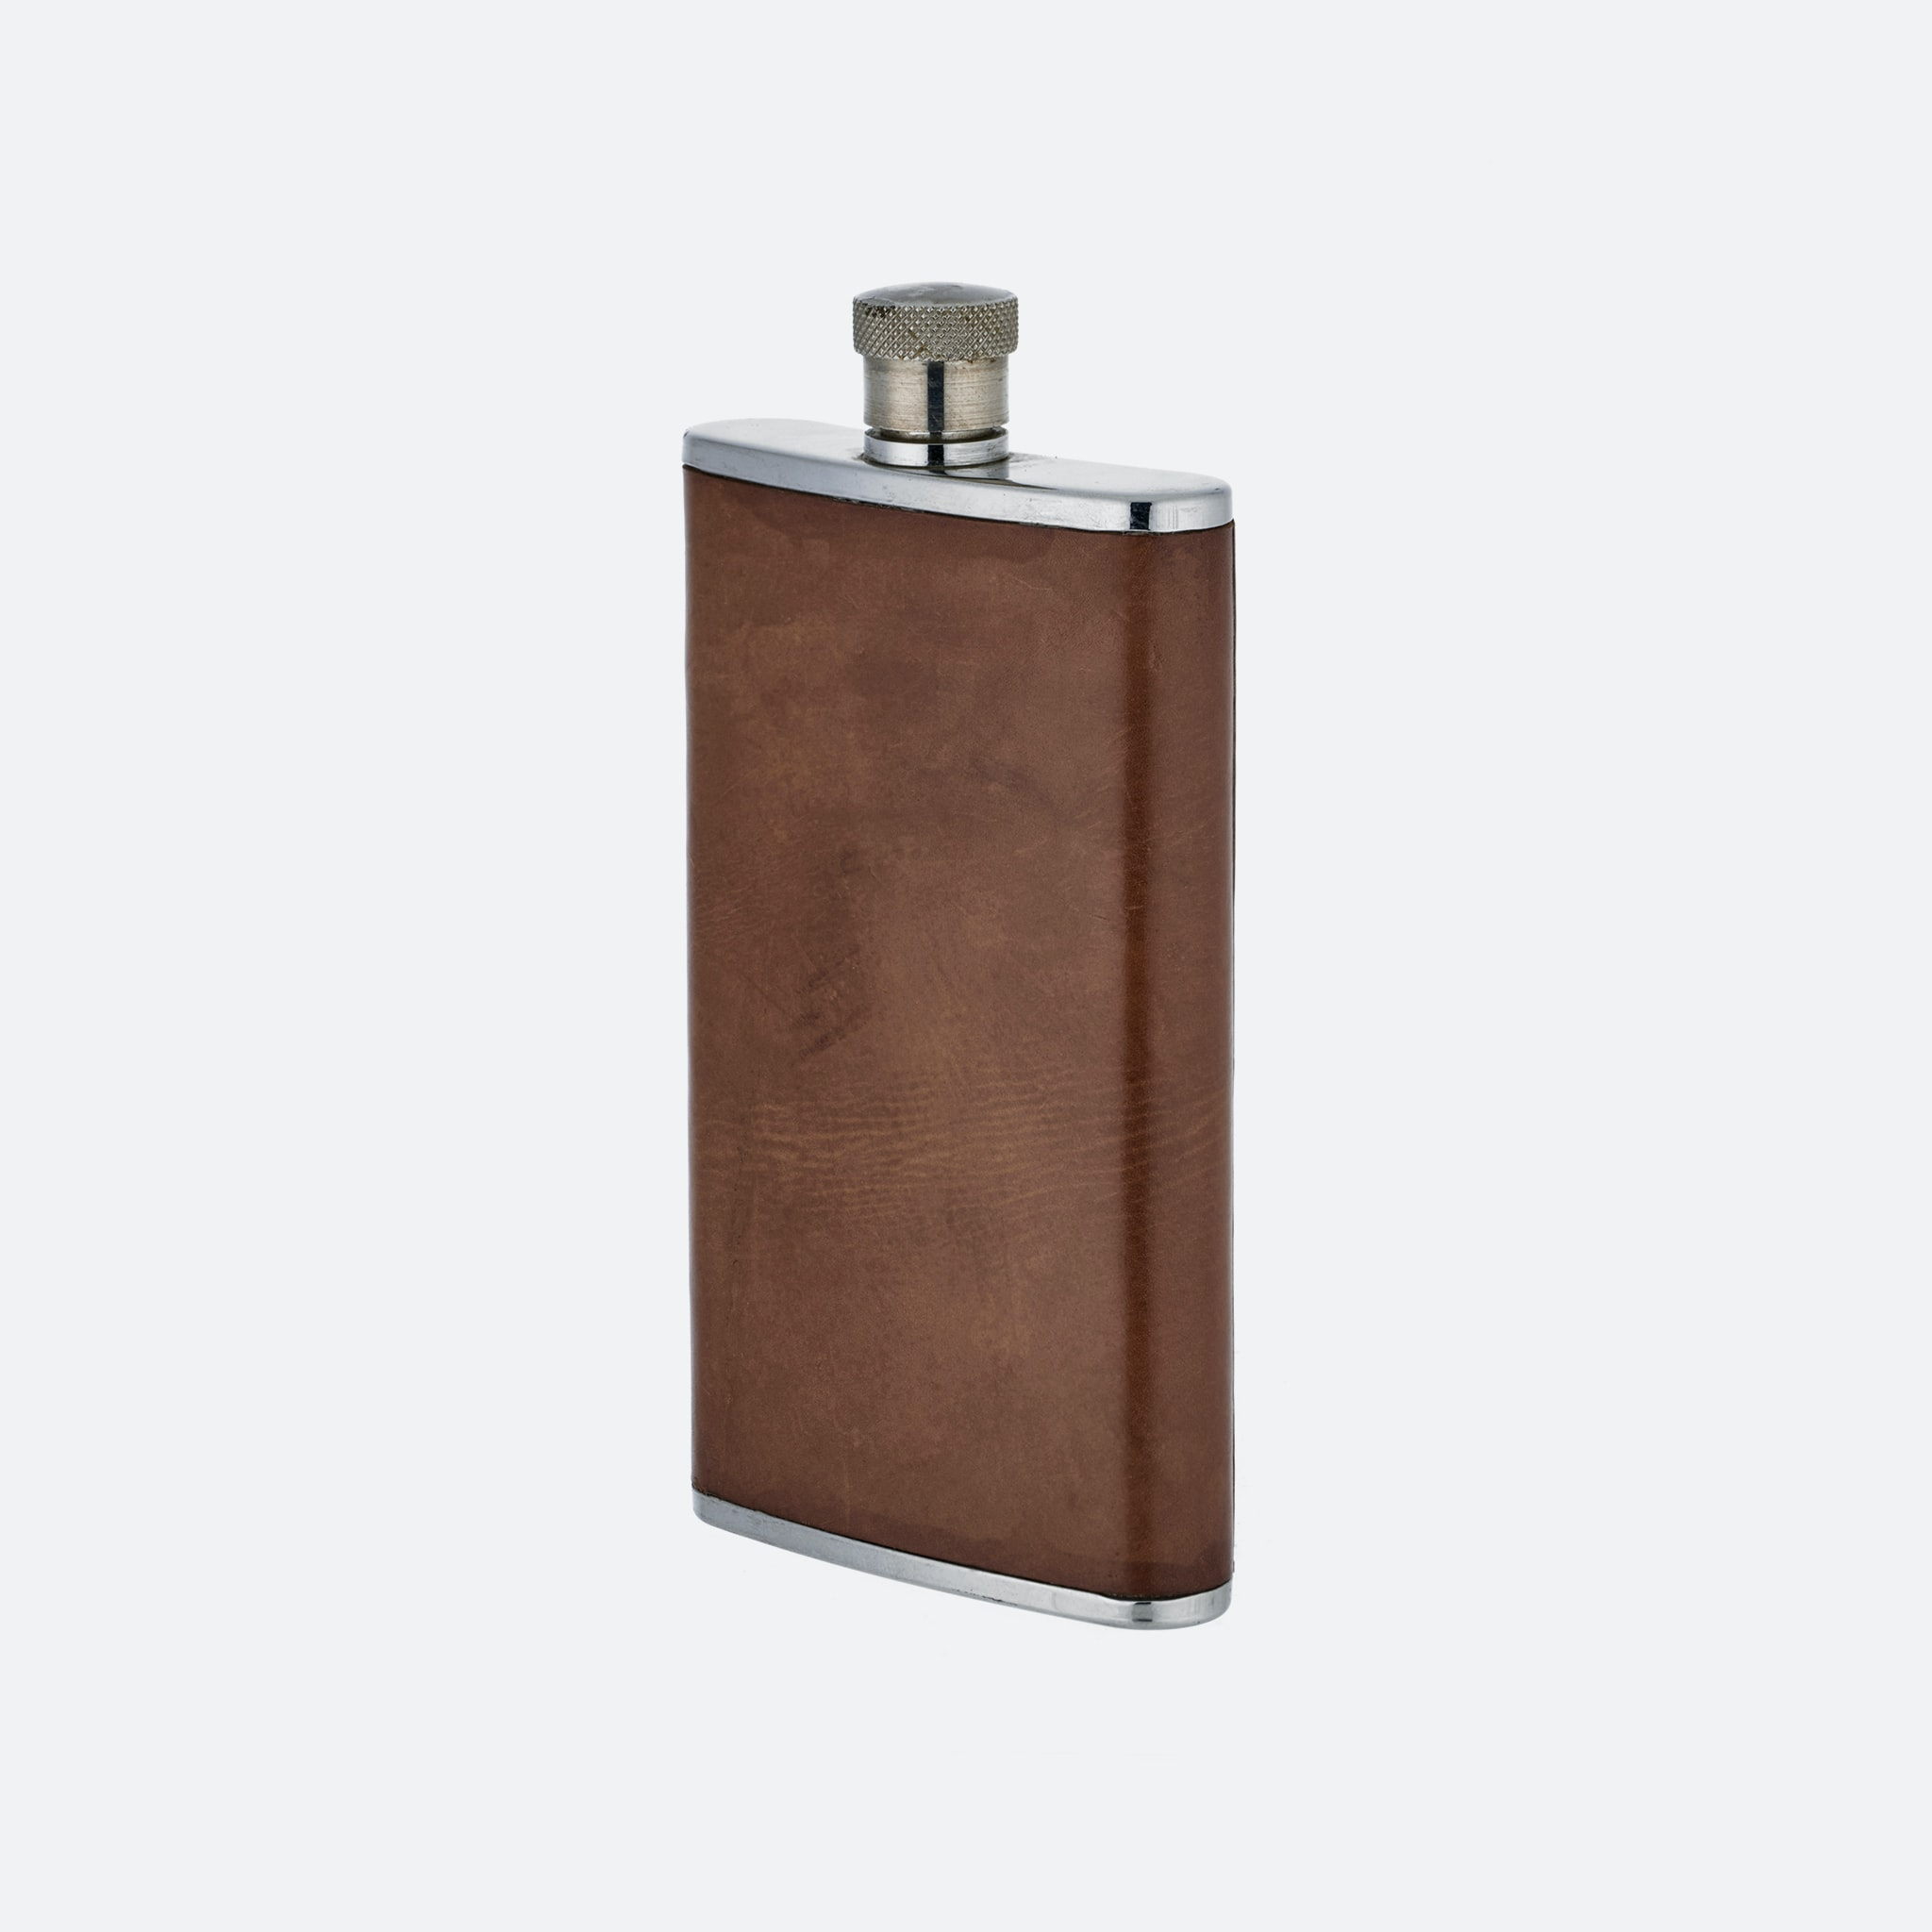 In The Shop: Introducing The HODINKEE Holiday Gift Collection In The Shop: Introducing The HODINKEE Holiday Gift Collection 571 Flask A